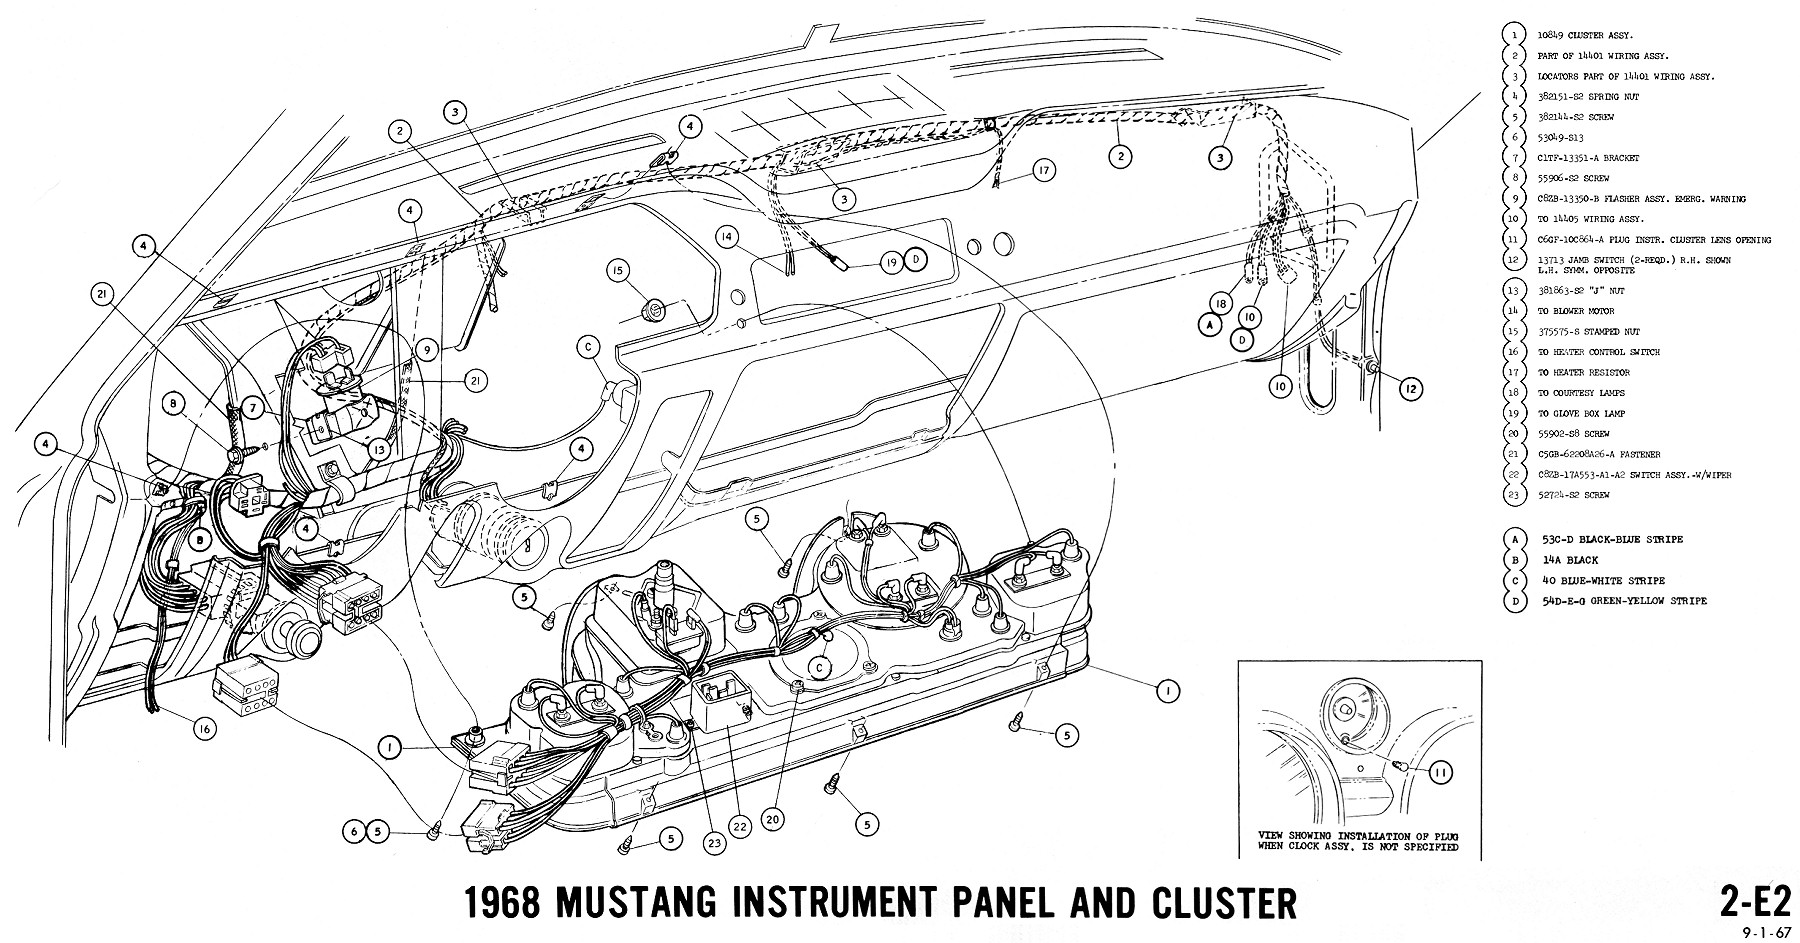 1968 mustang engine wire harness